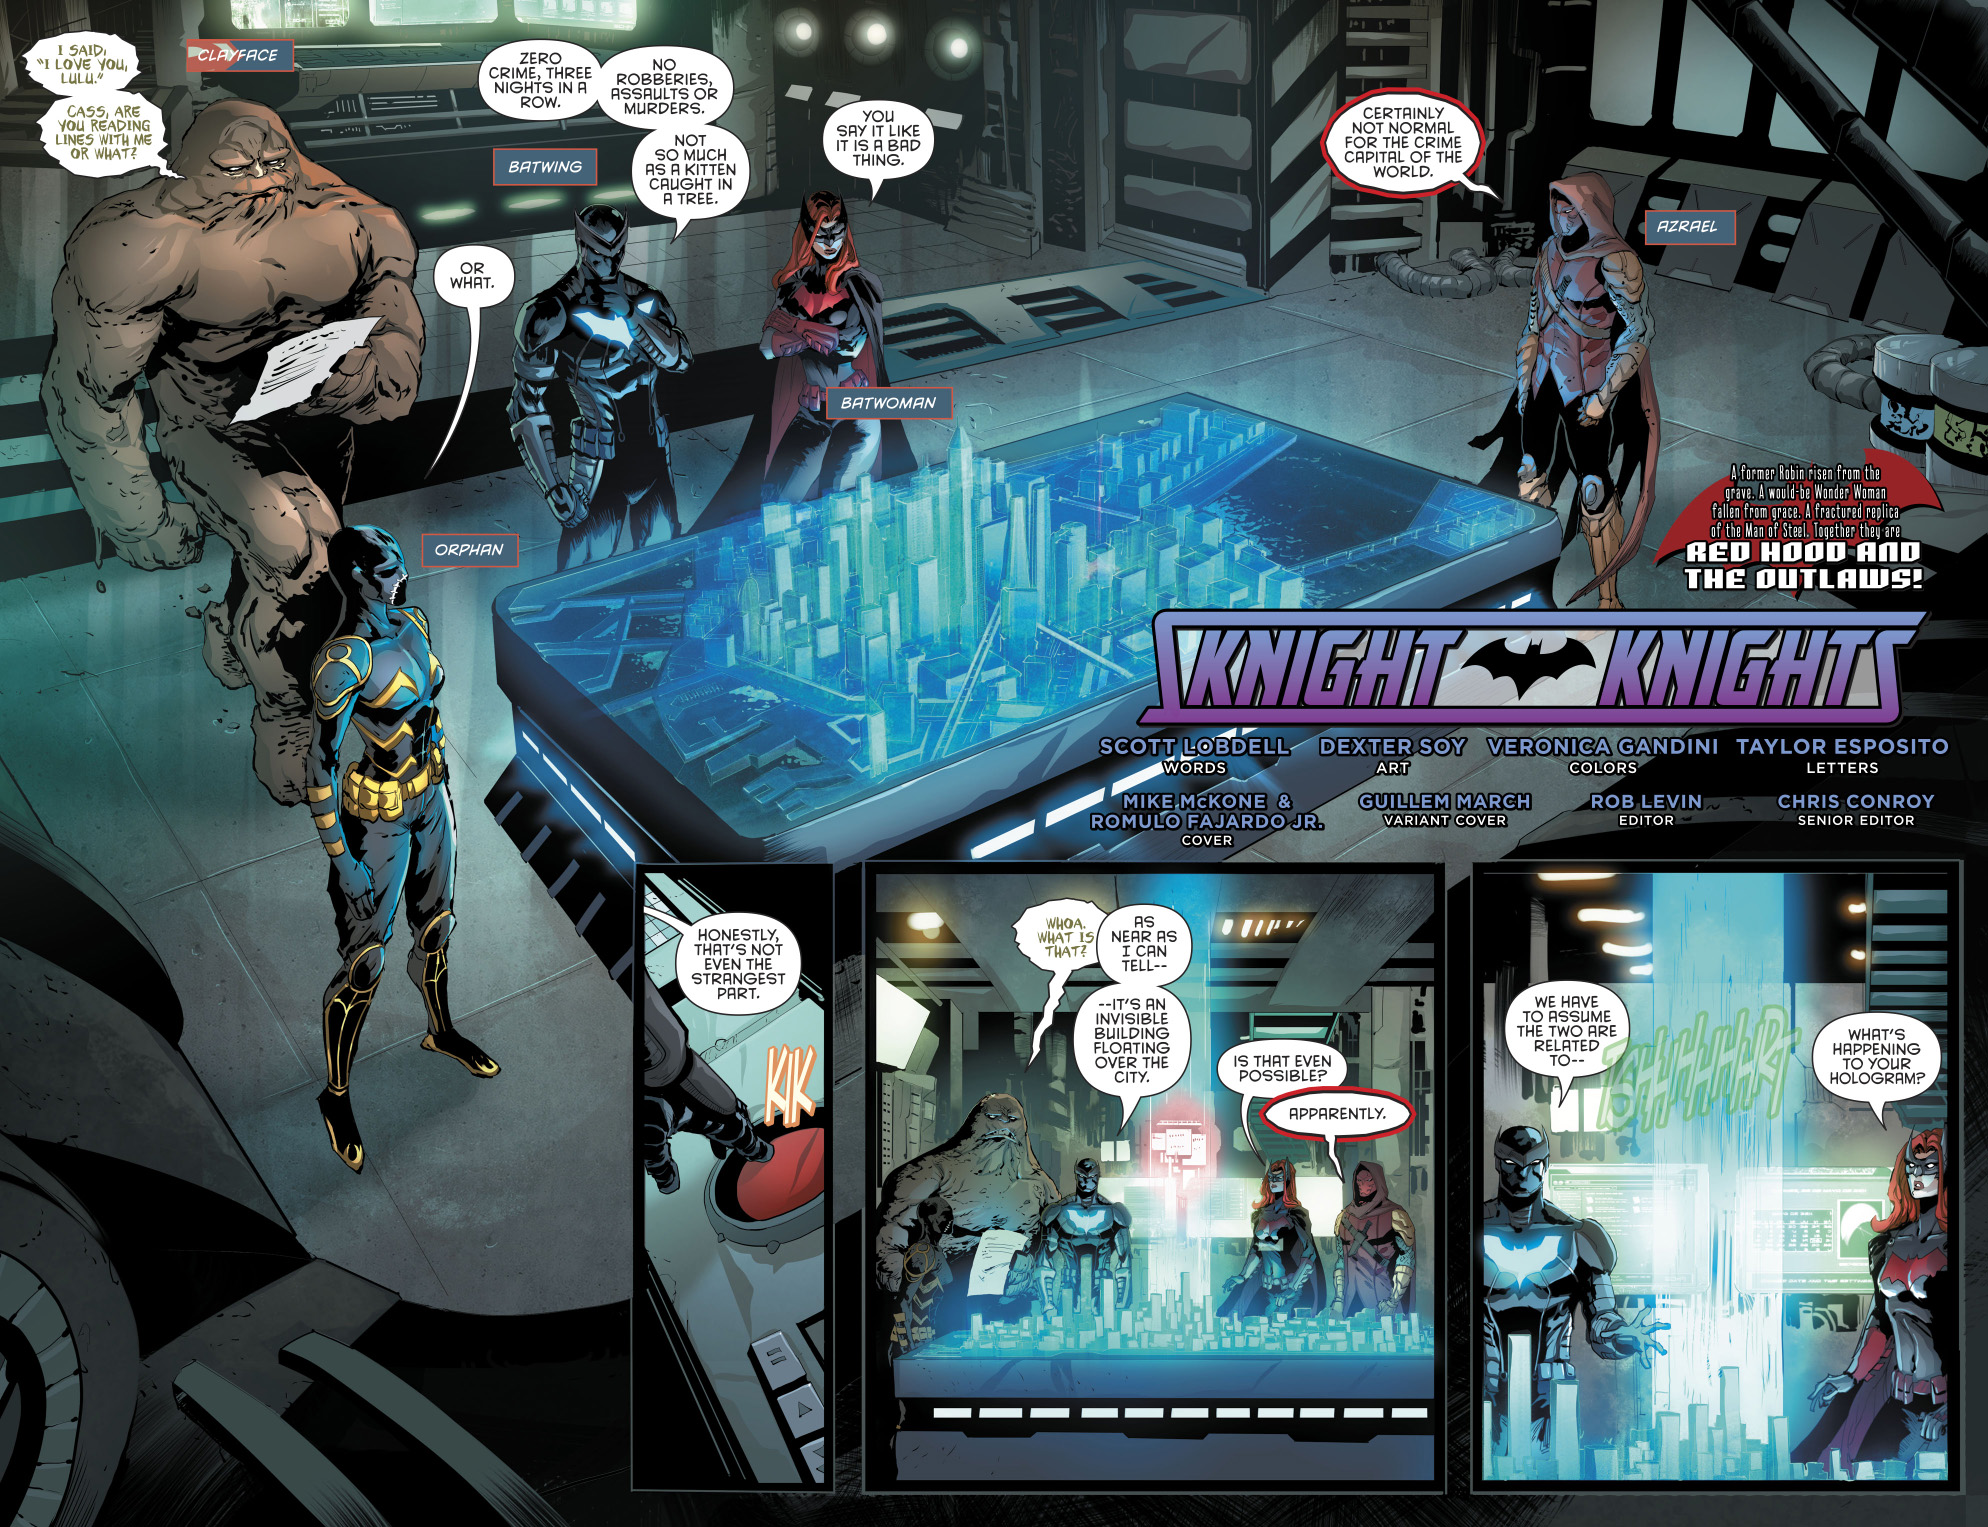 The Batman Family (Red Hood and the Outlaws Vol 2 #15)